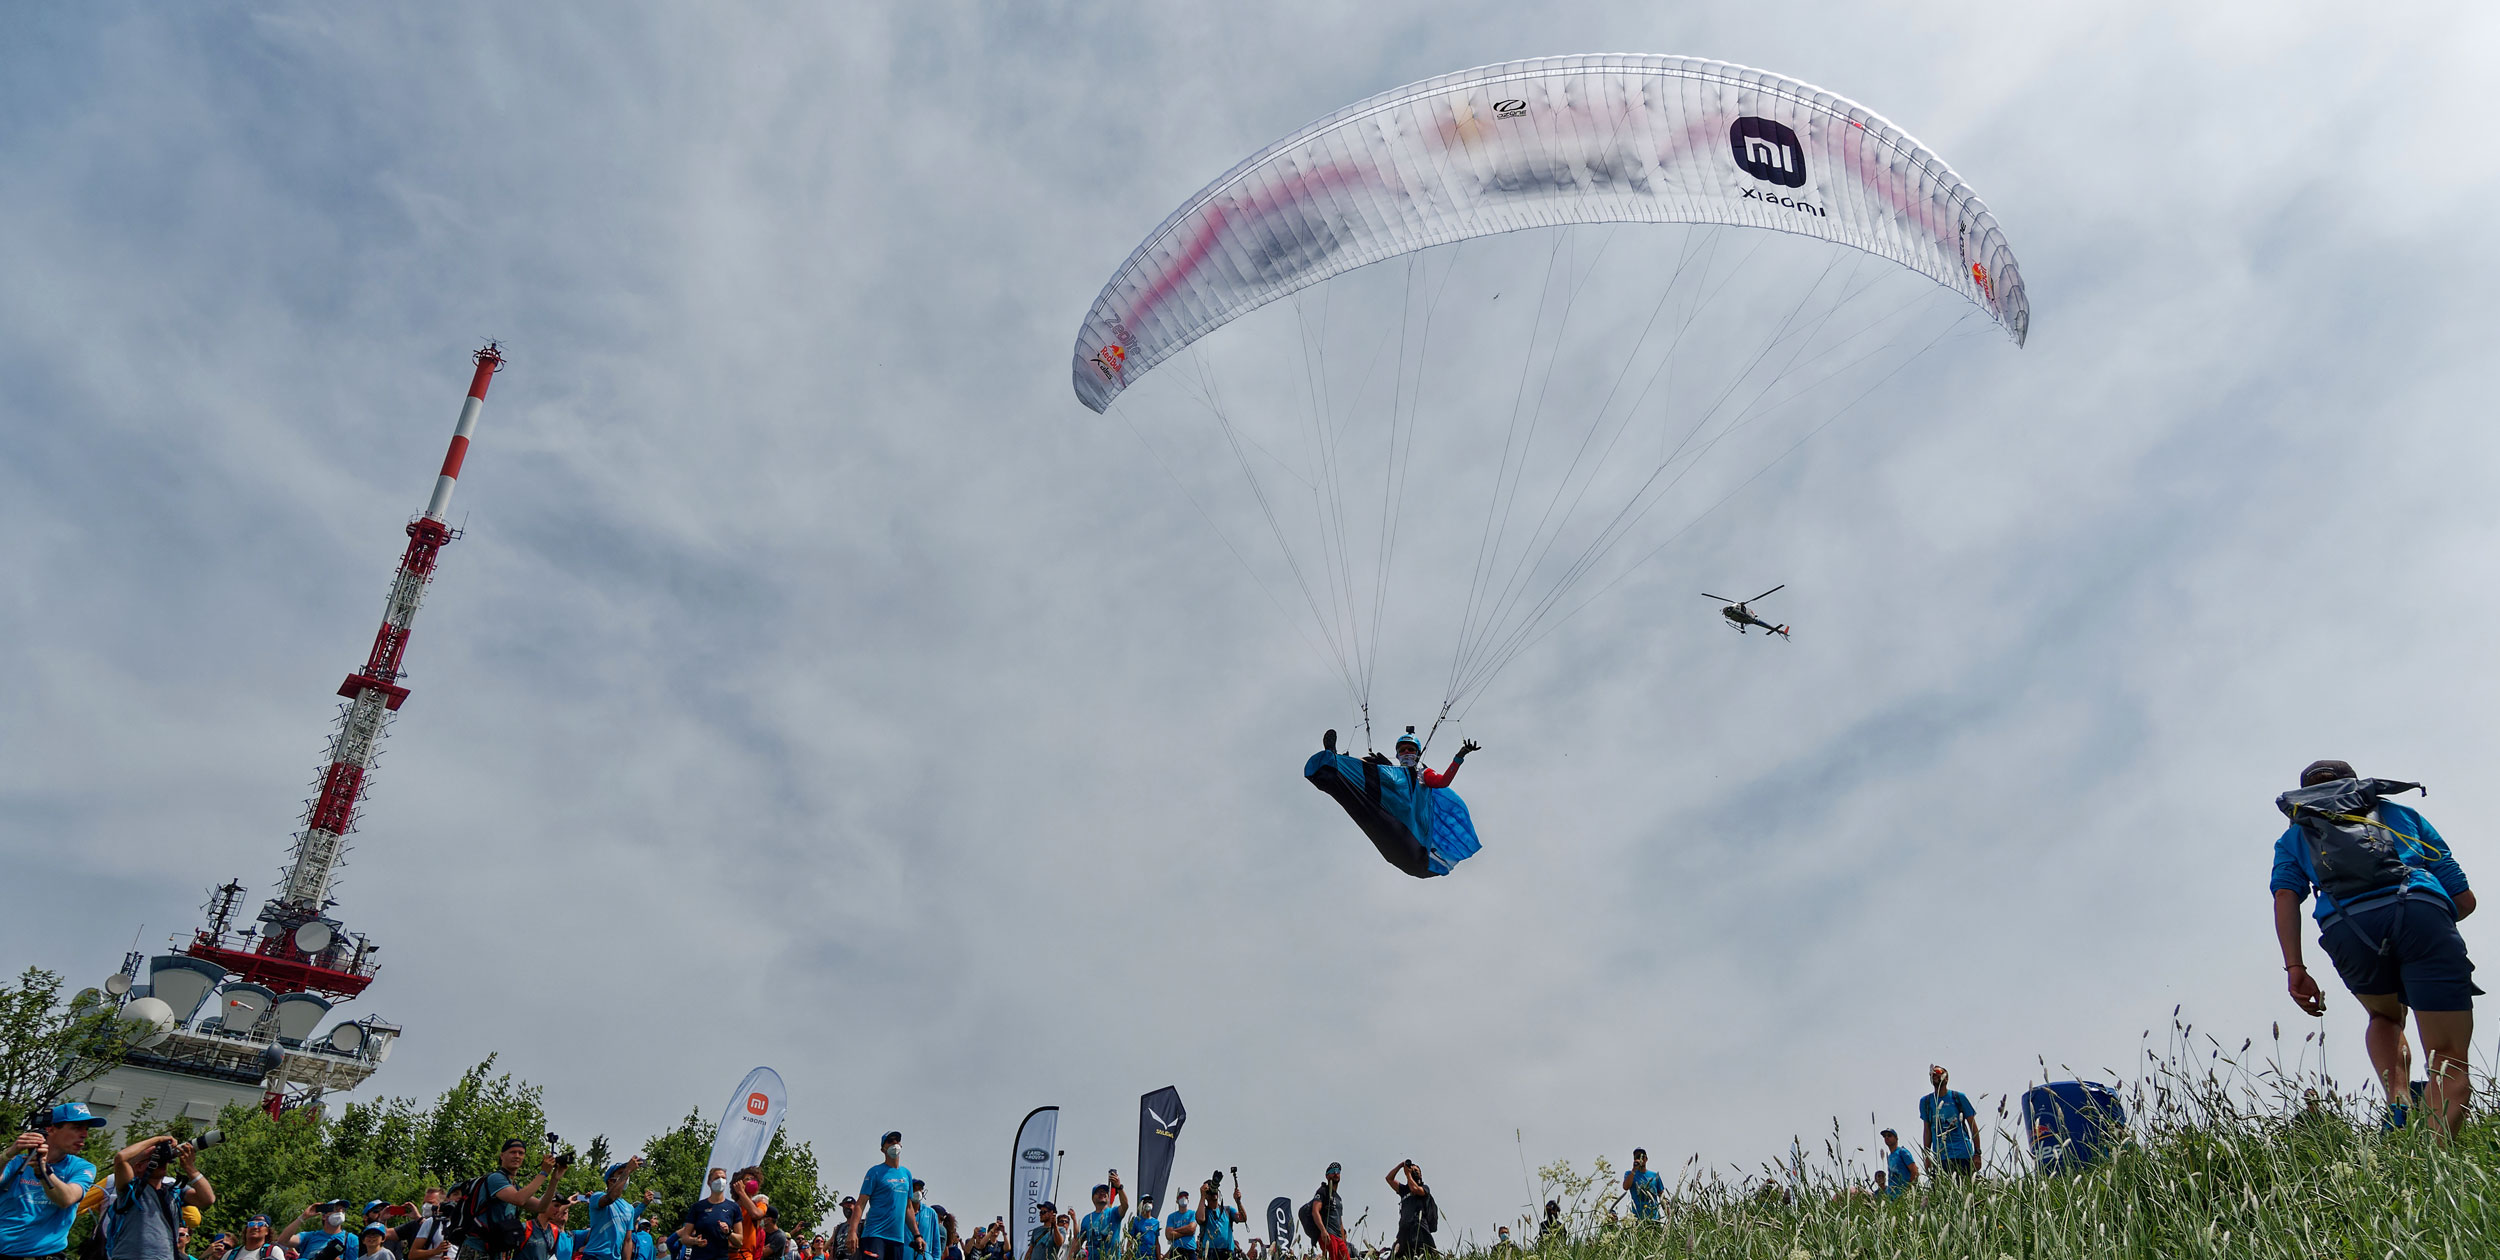 Launching from the Gaisberg on Day 1 of the Red Bull X-Alps 2021